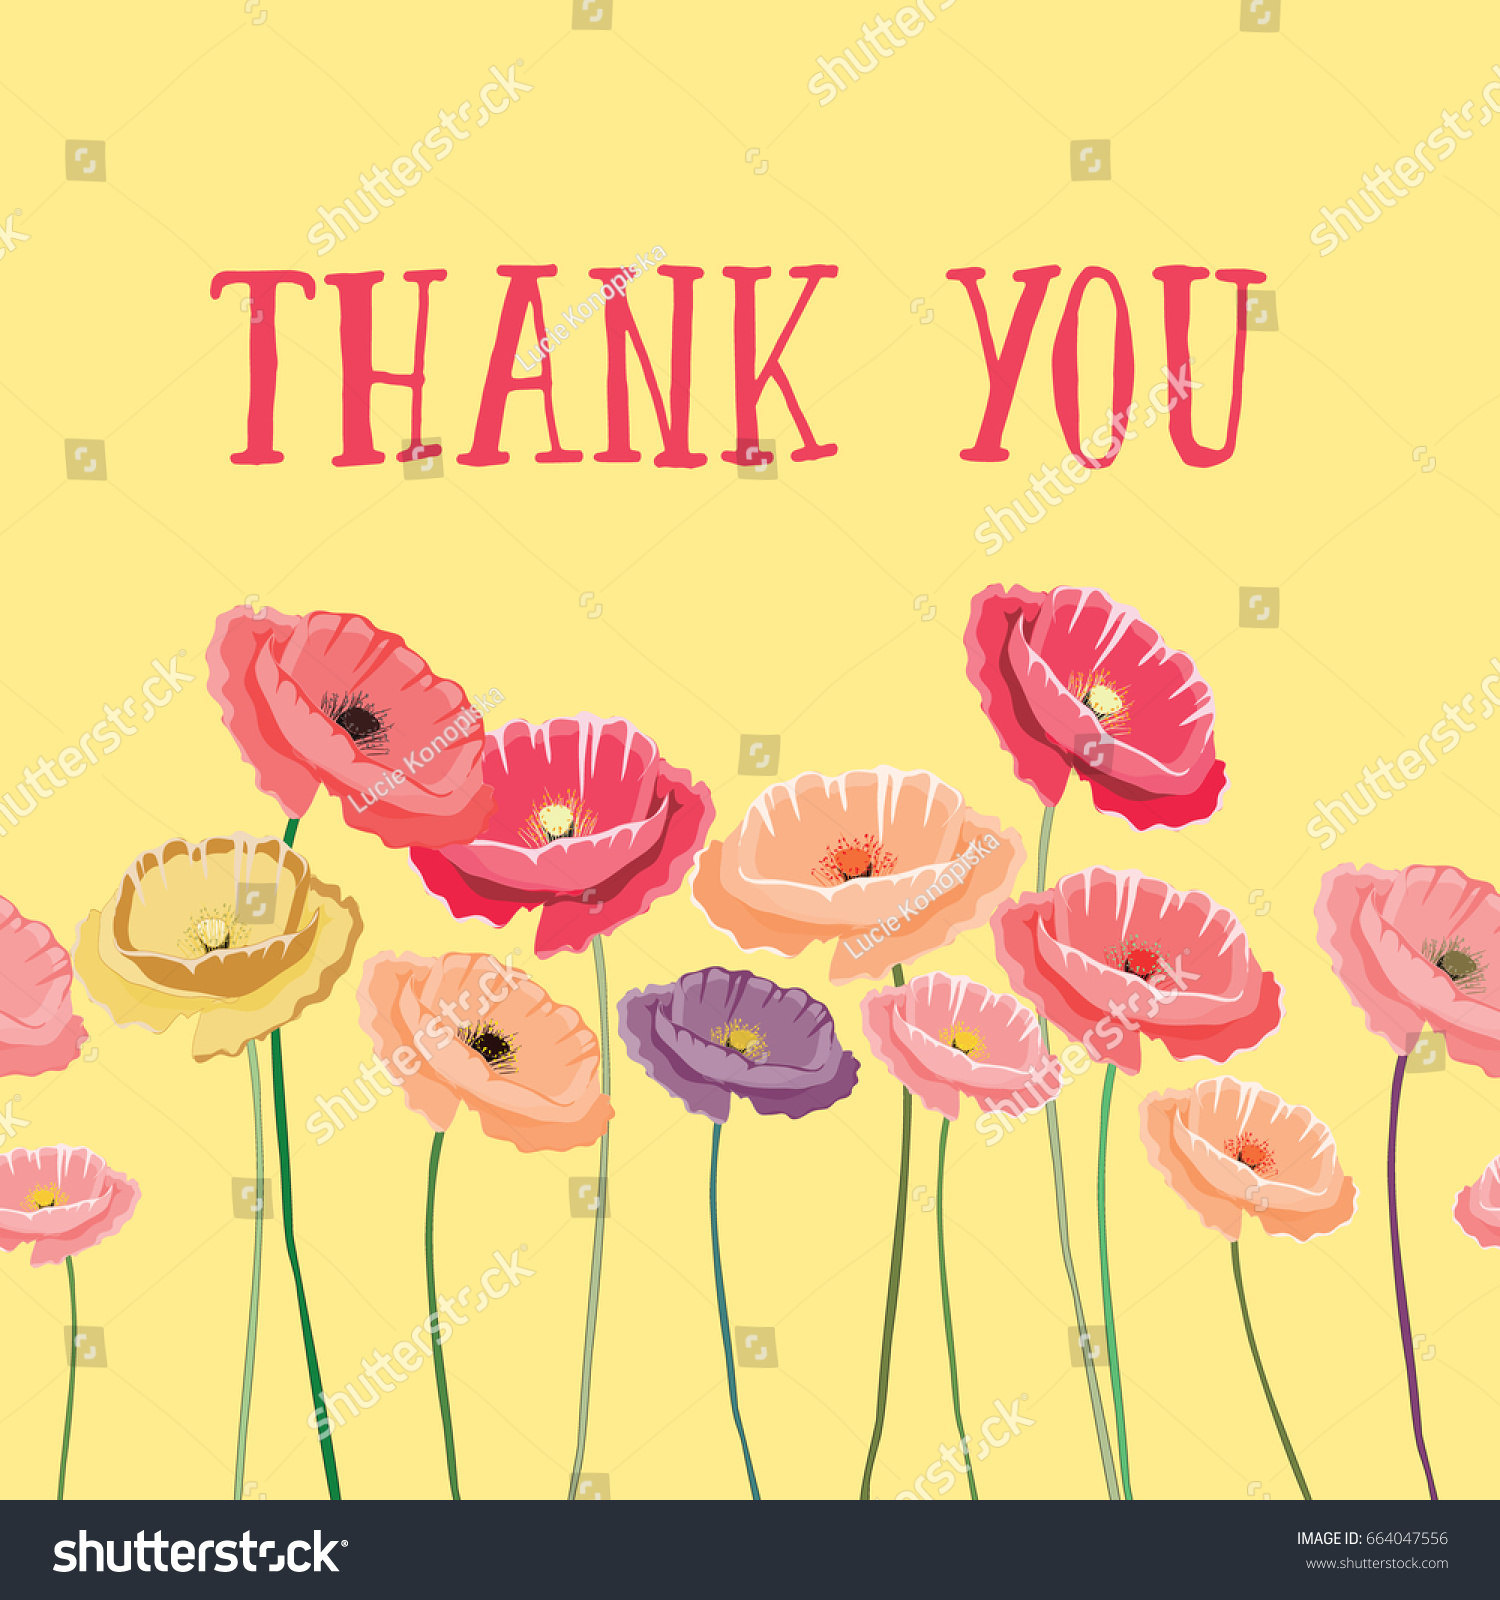 Thank you greeting card colorful poppies stock vector 664047556 thank you greeting card with colorful poppies on yellow background vector illustration of romantic kristyandbryce Images